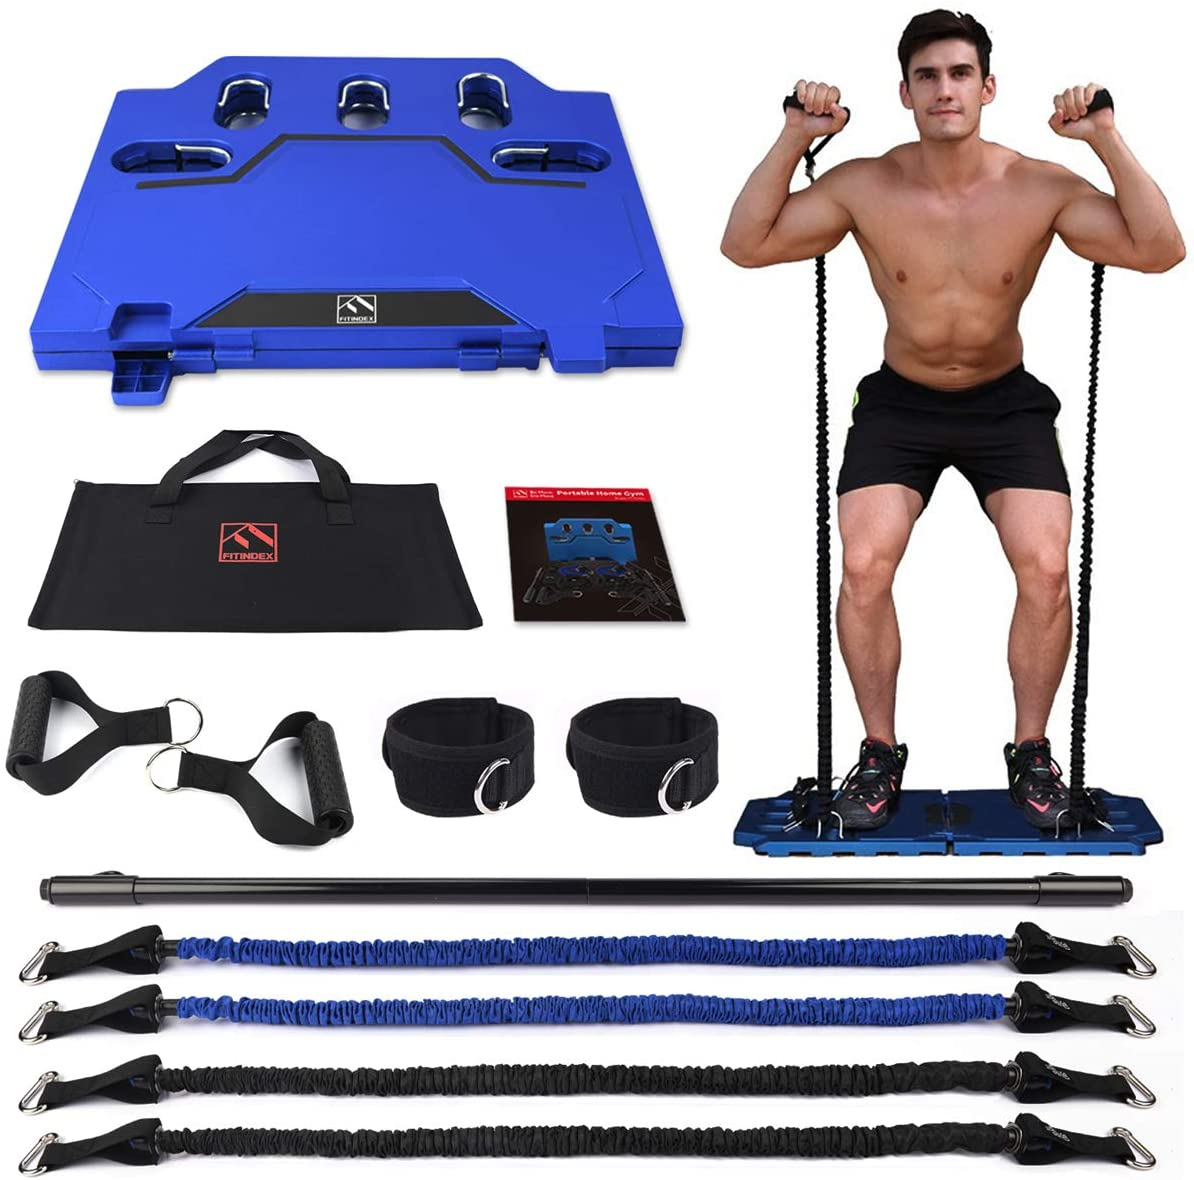 FITINDEX Portable Home Gym - Exercise Equipment with Resistance Bands & Workout Bar, Strength Training Workout Equipment for Men/Women, Full-Body Fitness Equipment for Indoor/Outdoor/Travel